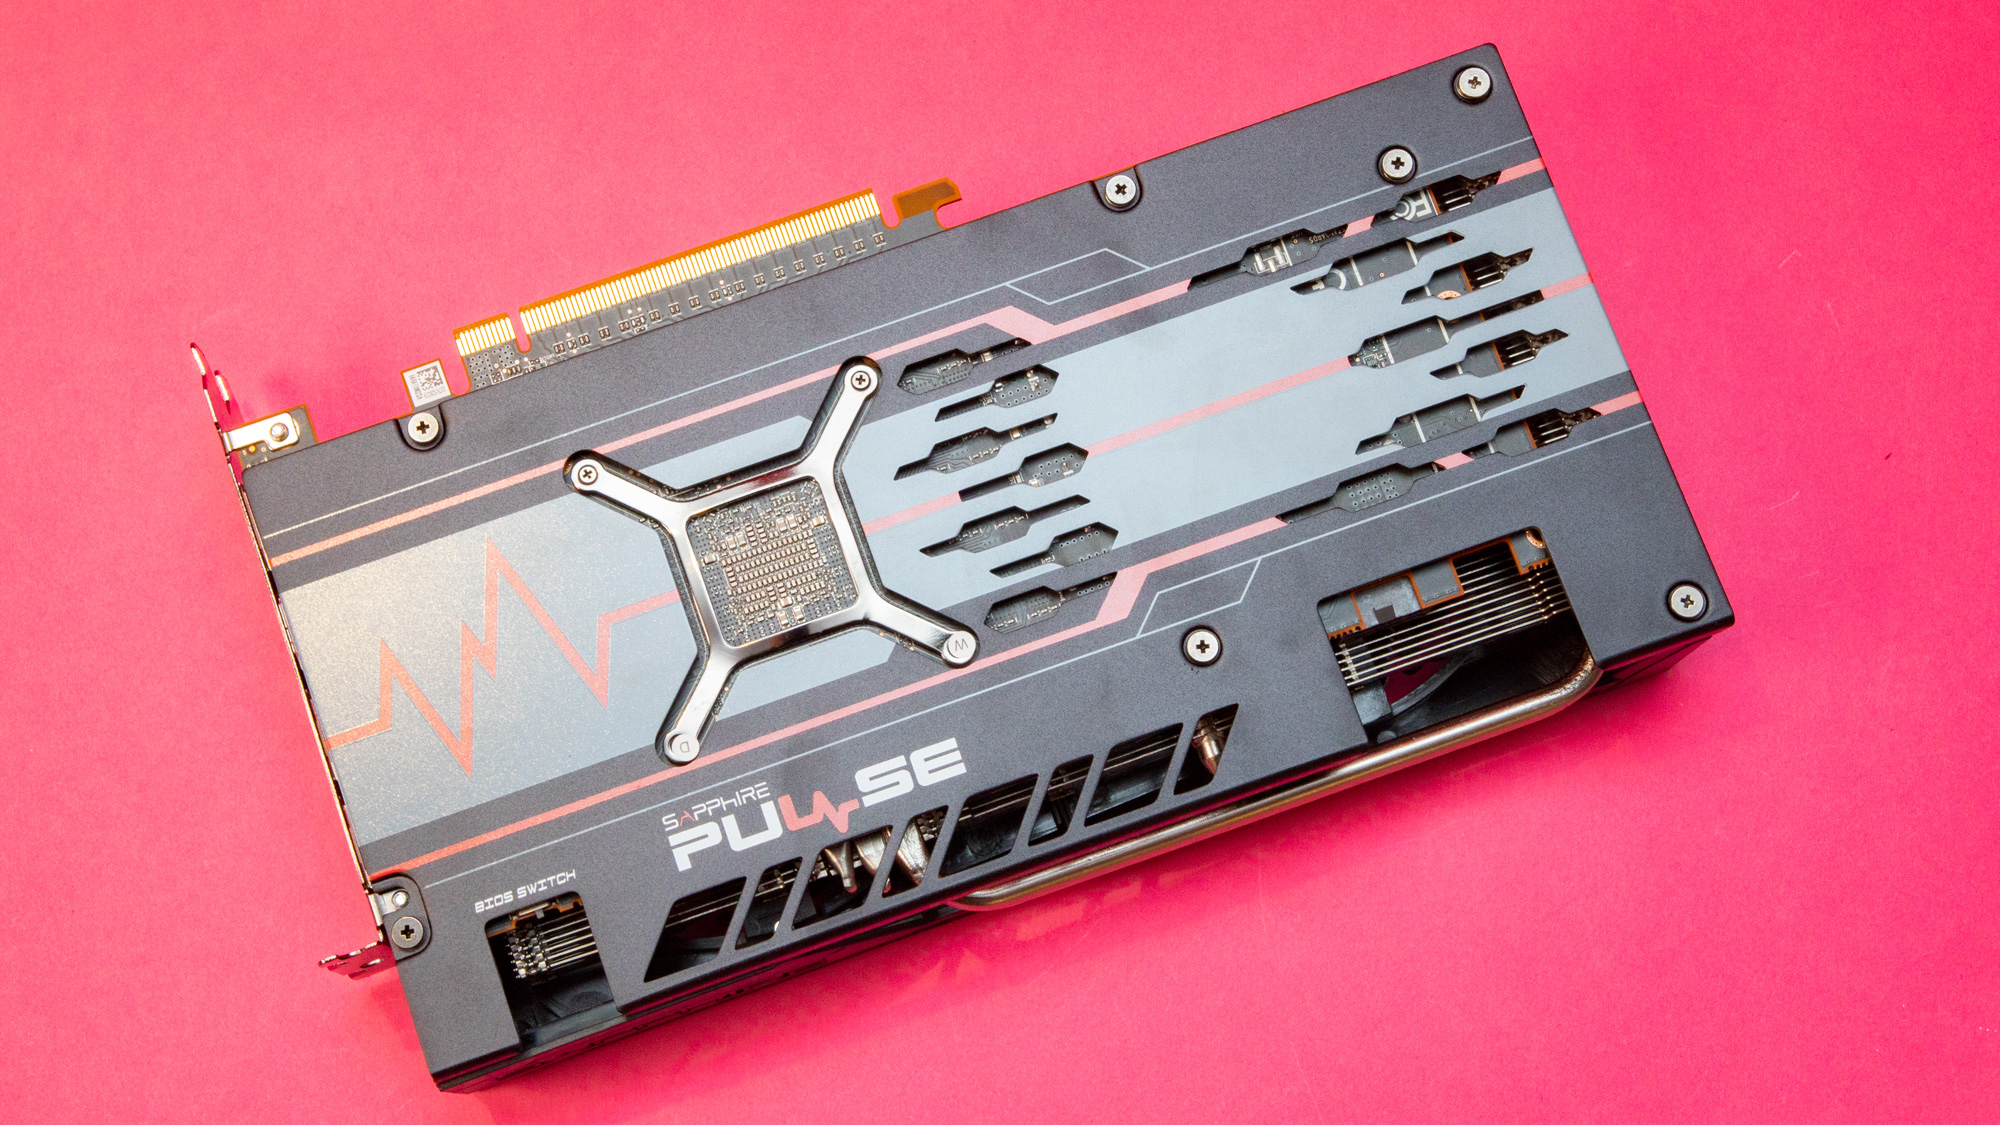 There are graphics card choices for days Image Credit: TechRadar